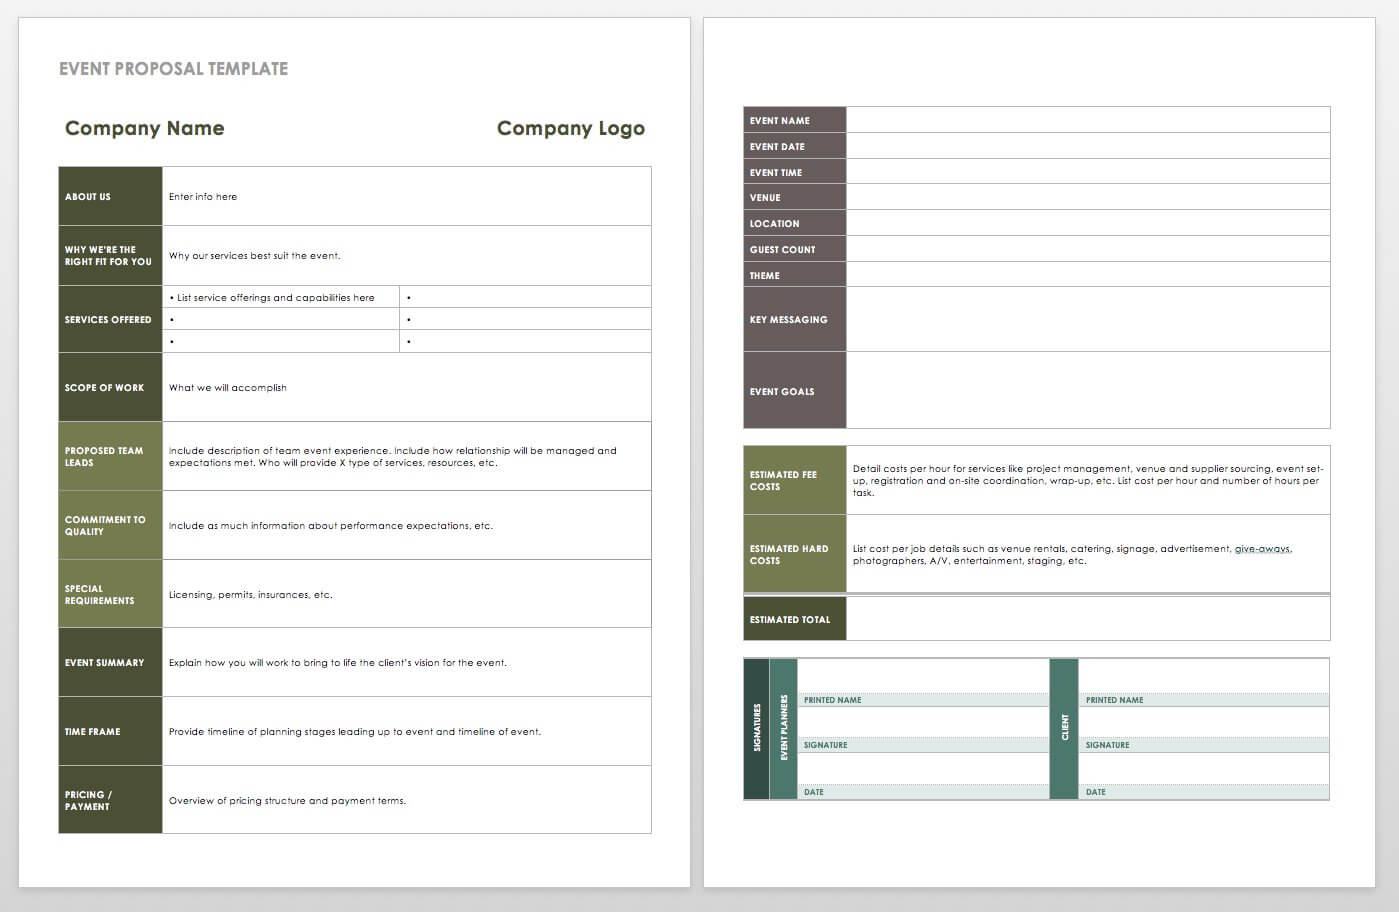 21 Free Event Planning Templates | Smartsheet Within Wrap Up Report Template